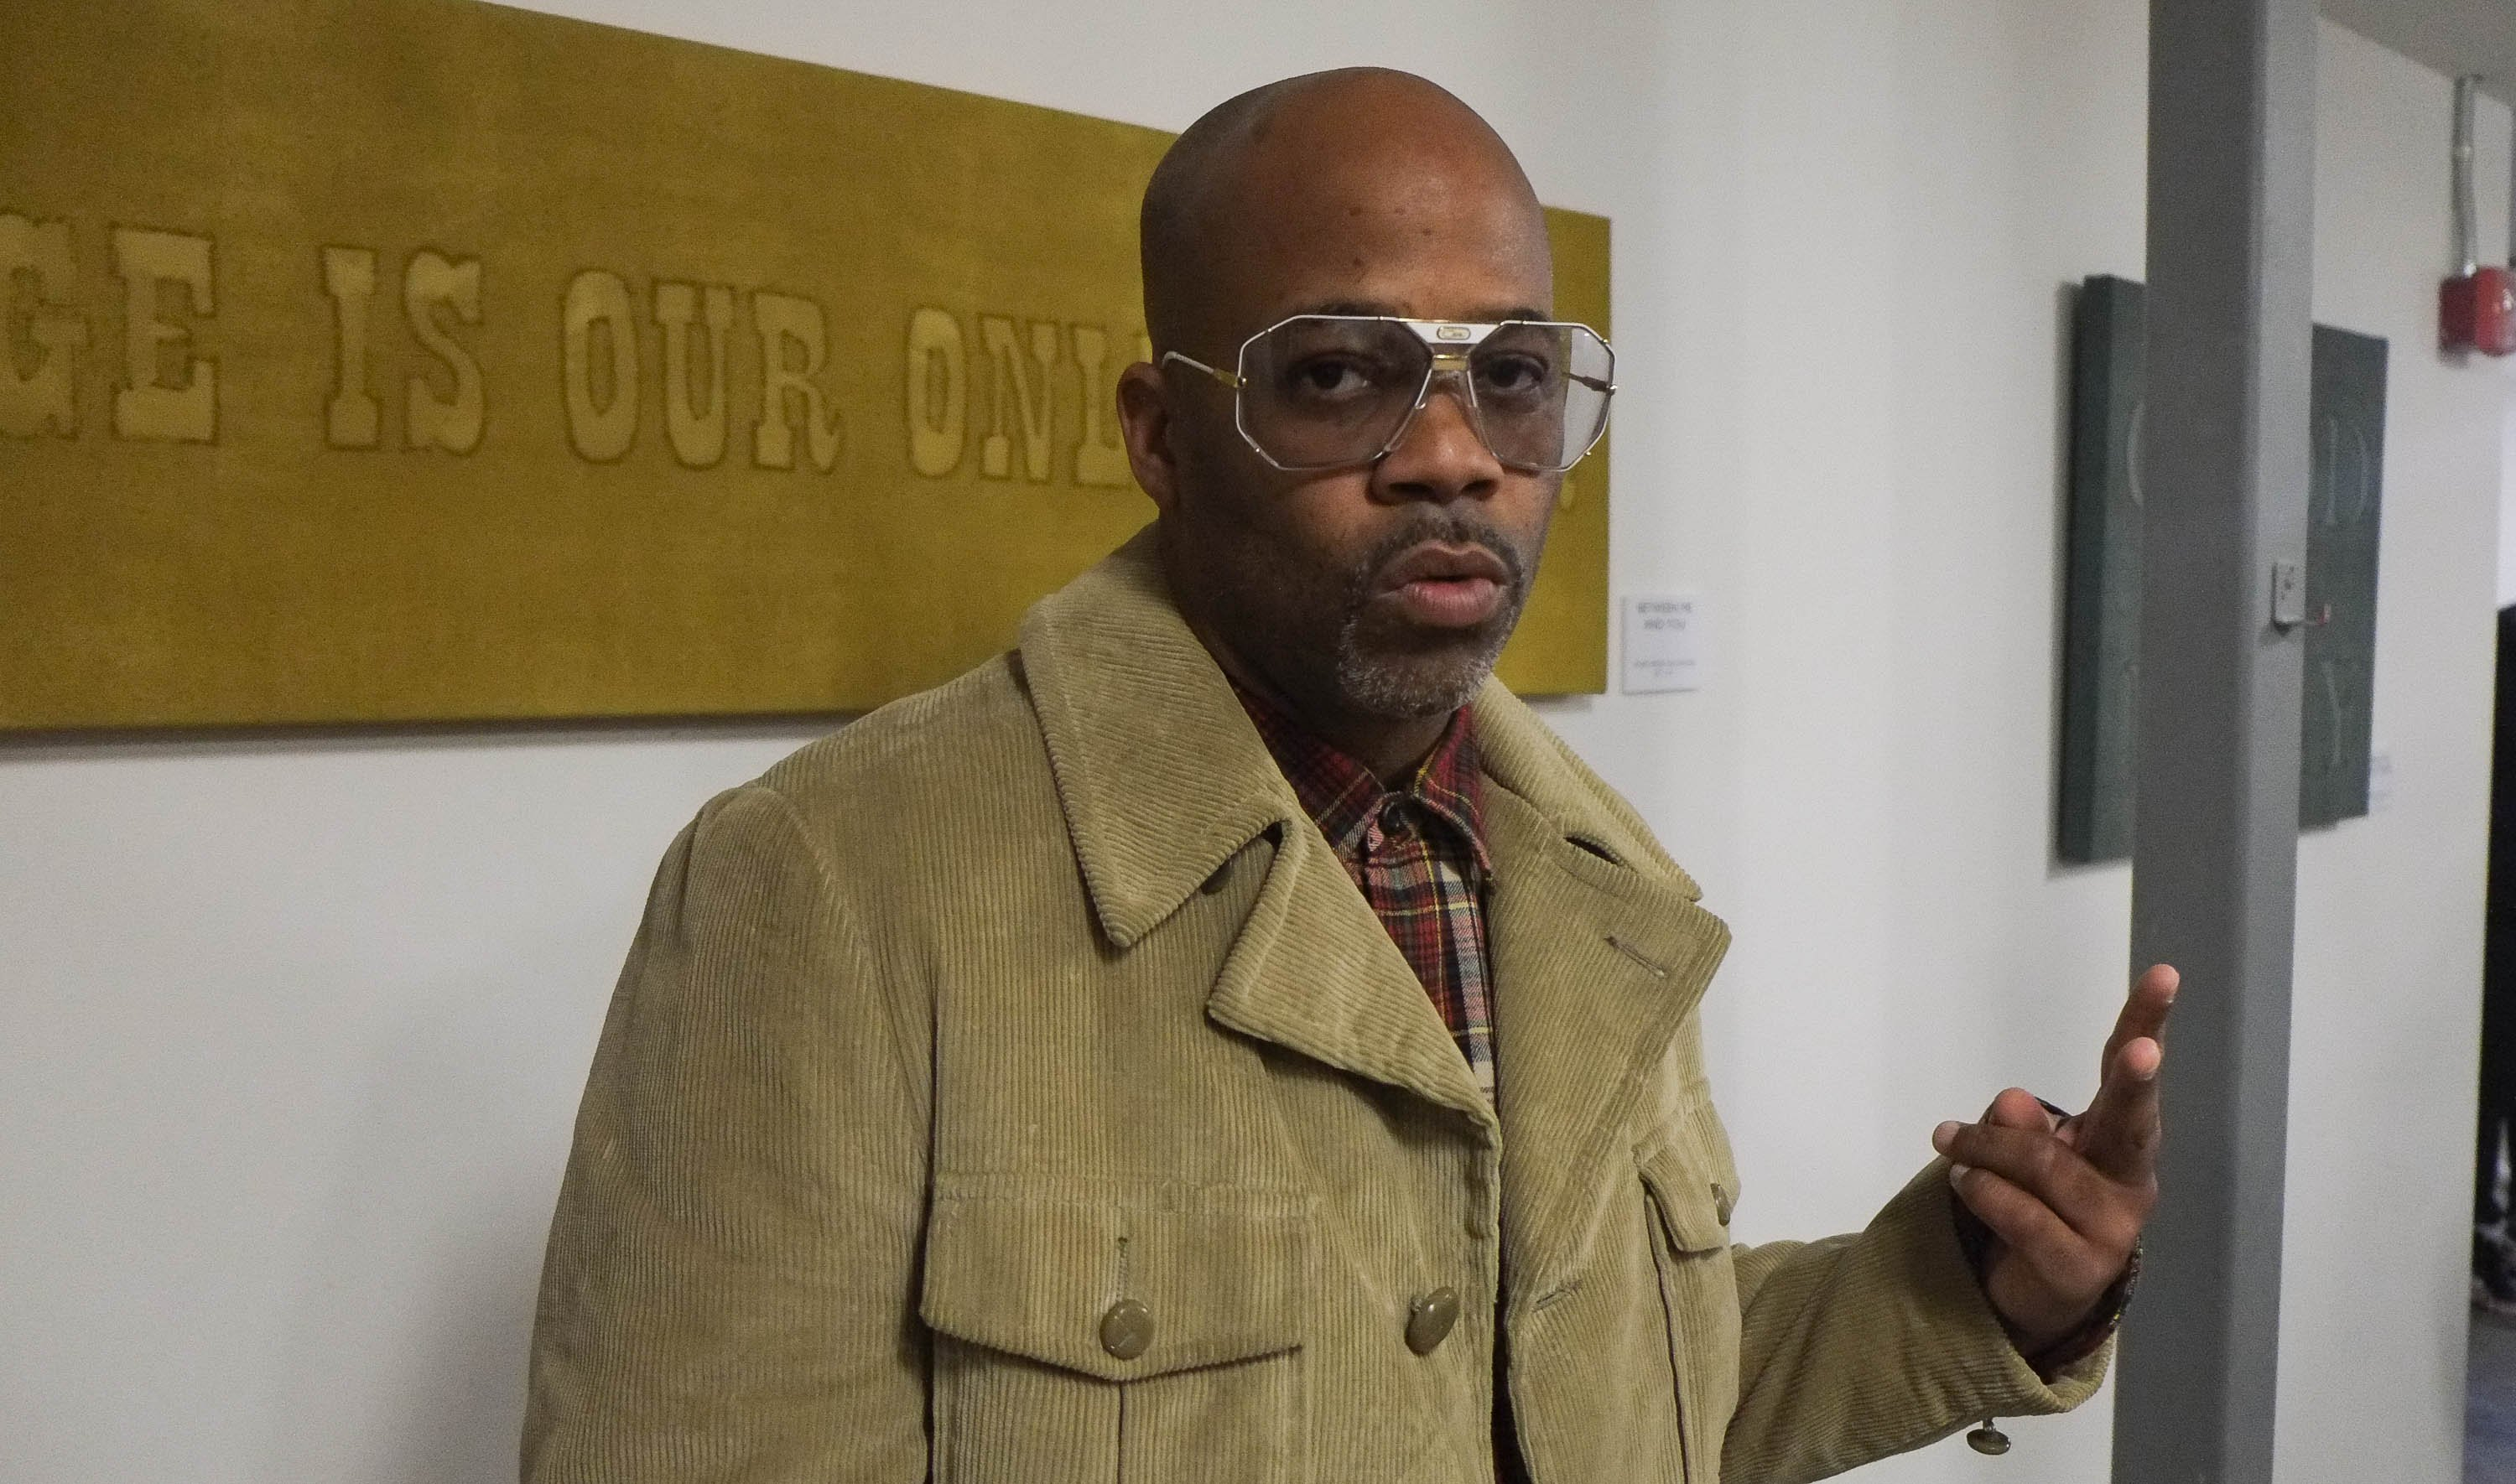 Damon Dash attending an art exhibition opening in March 2014. | Photo: Getty Images